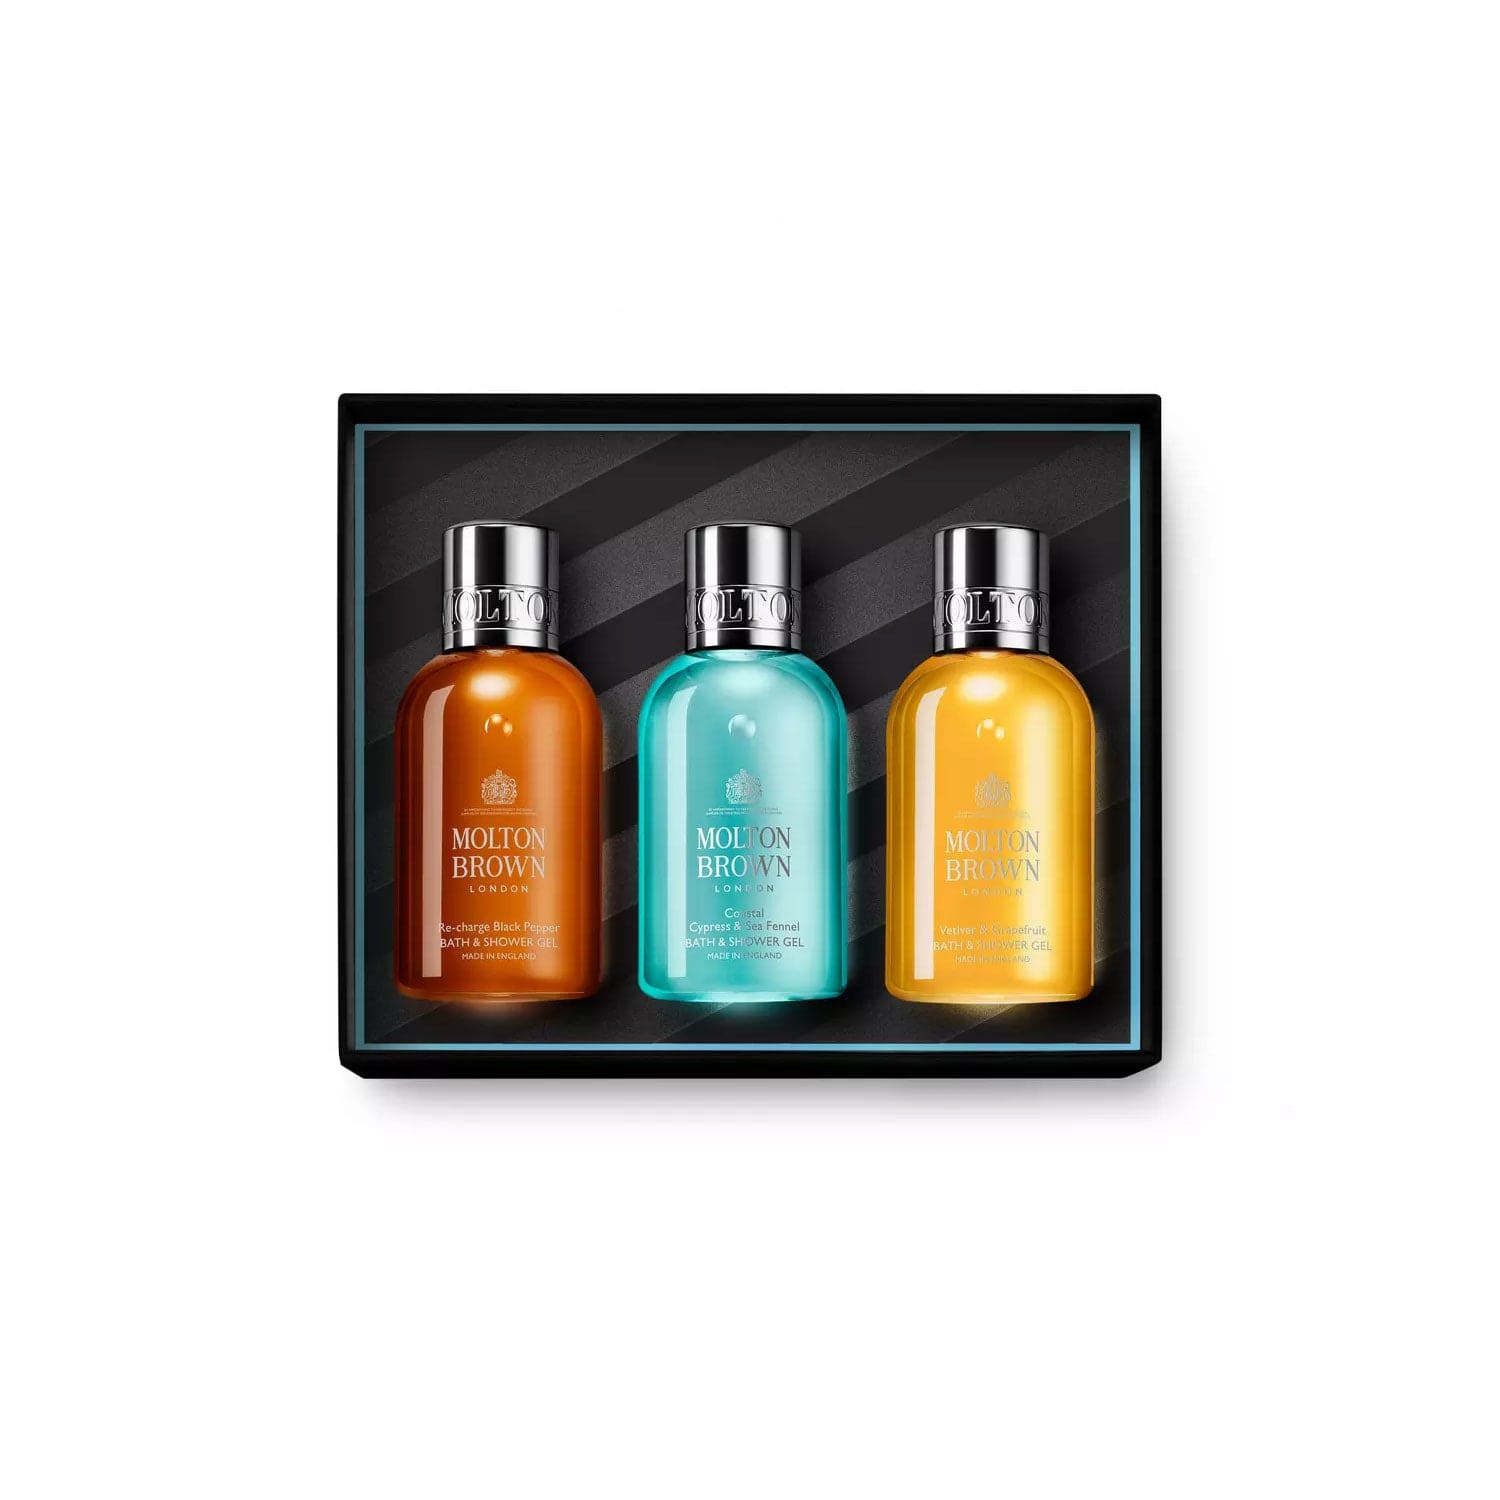 Molton Brown Woody & Citrus Travel Gift Set